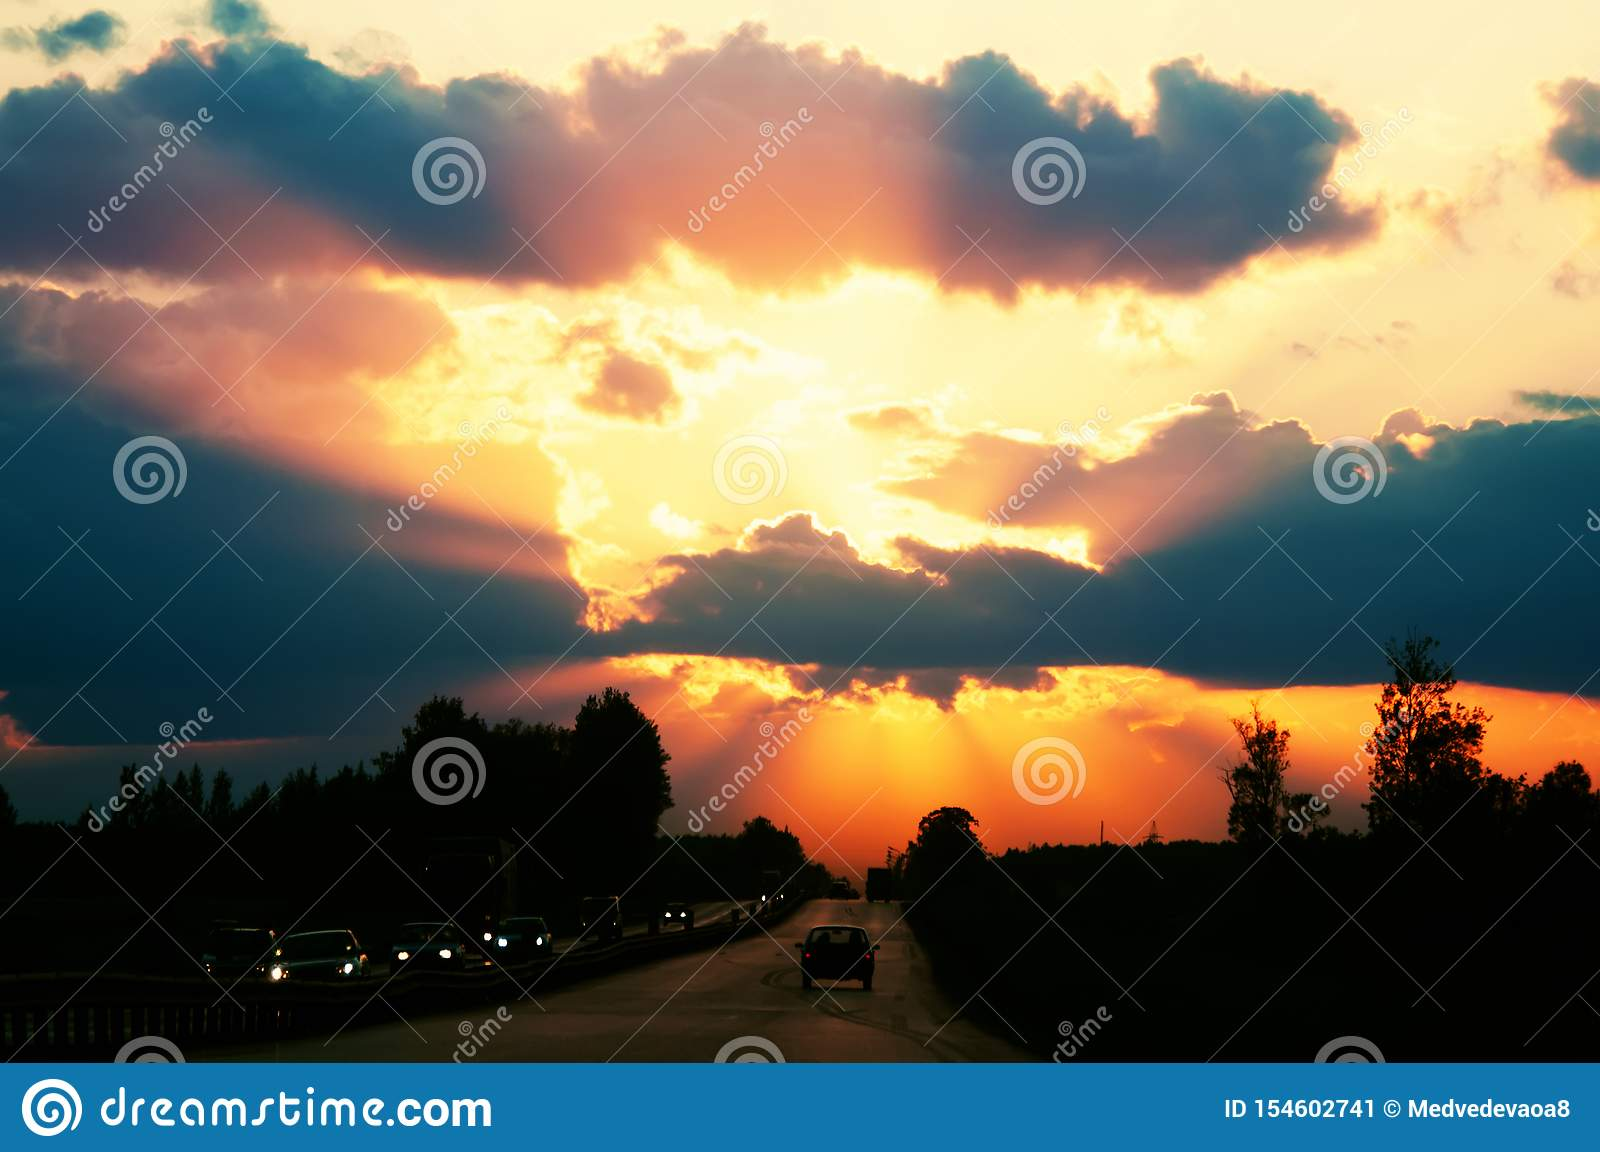 Highway with cars traveling on the sunset. Horizon line with the sun and storm clouds. Journeys. Selective focus